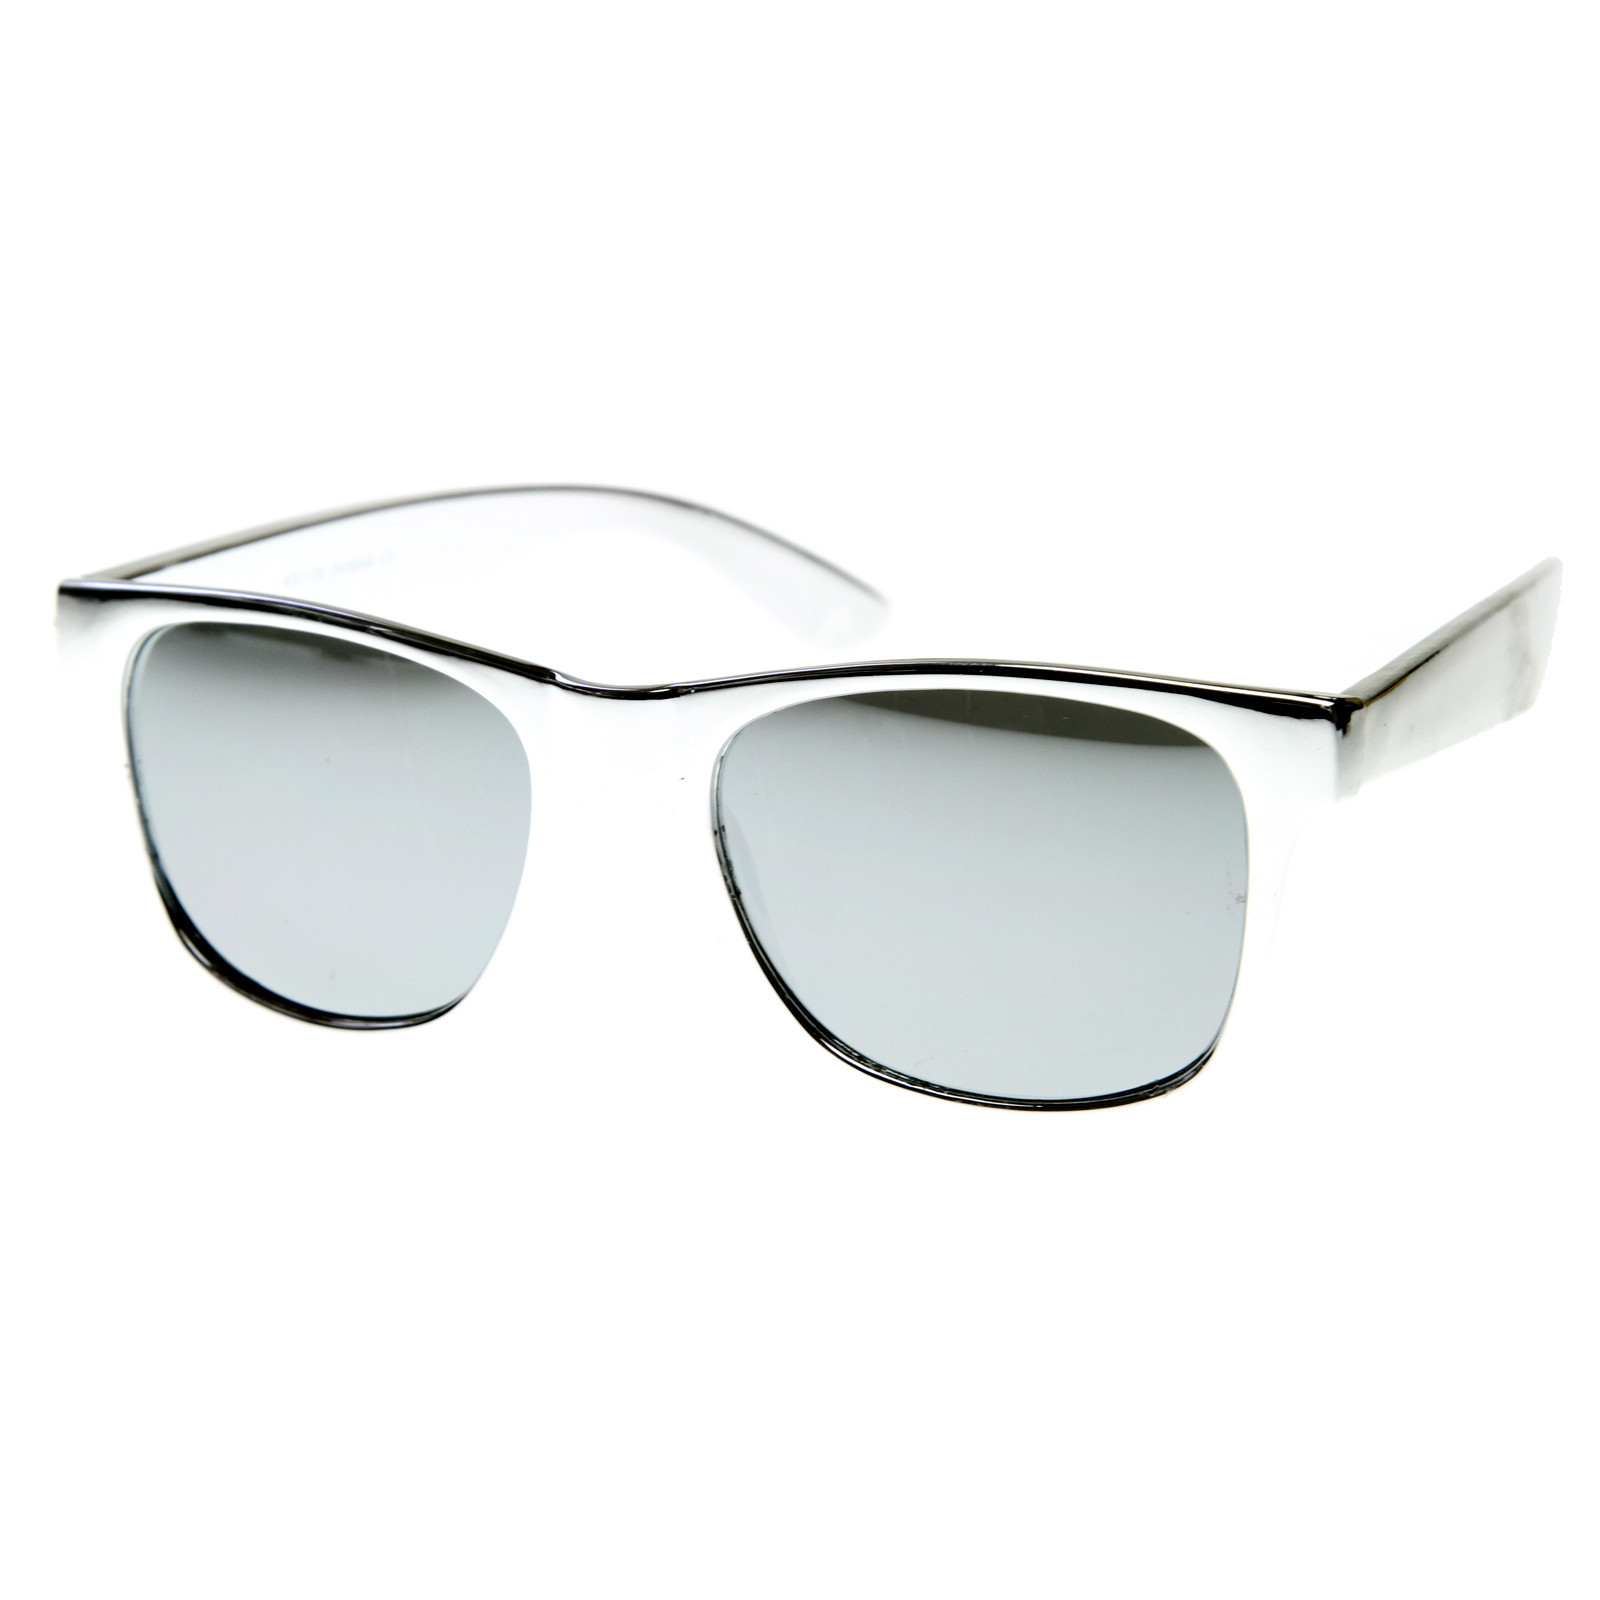 Hipster Platinum Gold Fashion Mirror Lens Wayfarer Sunglasses 8507